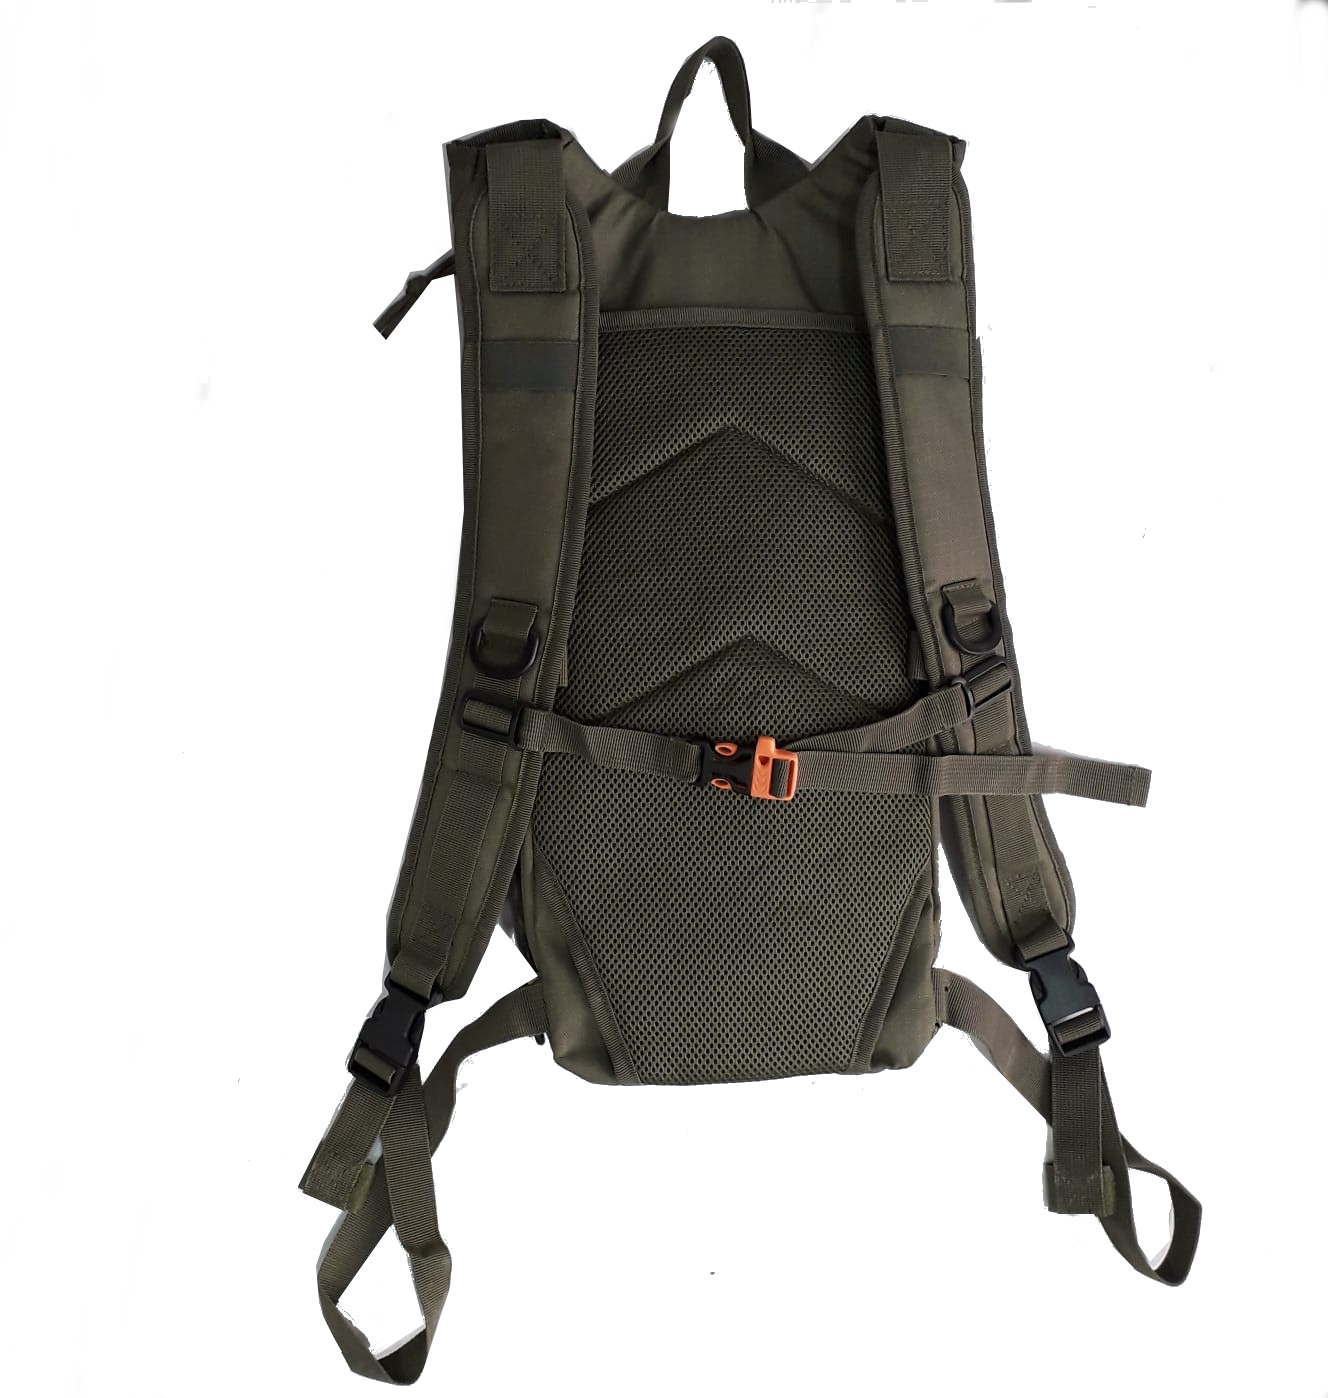 hydration pack green back view.jpeg